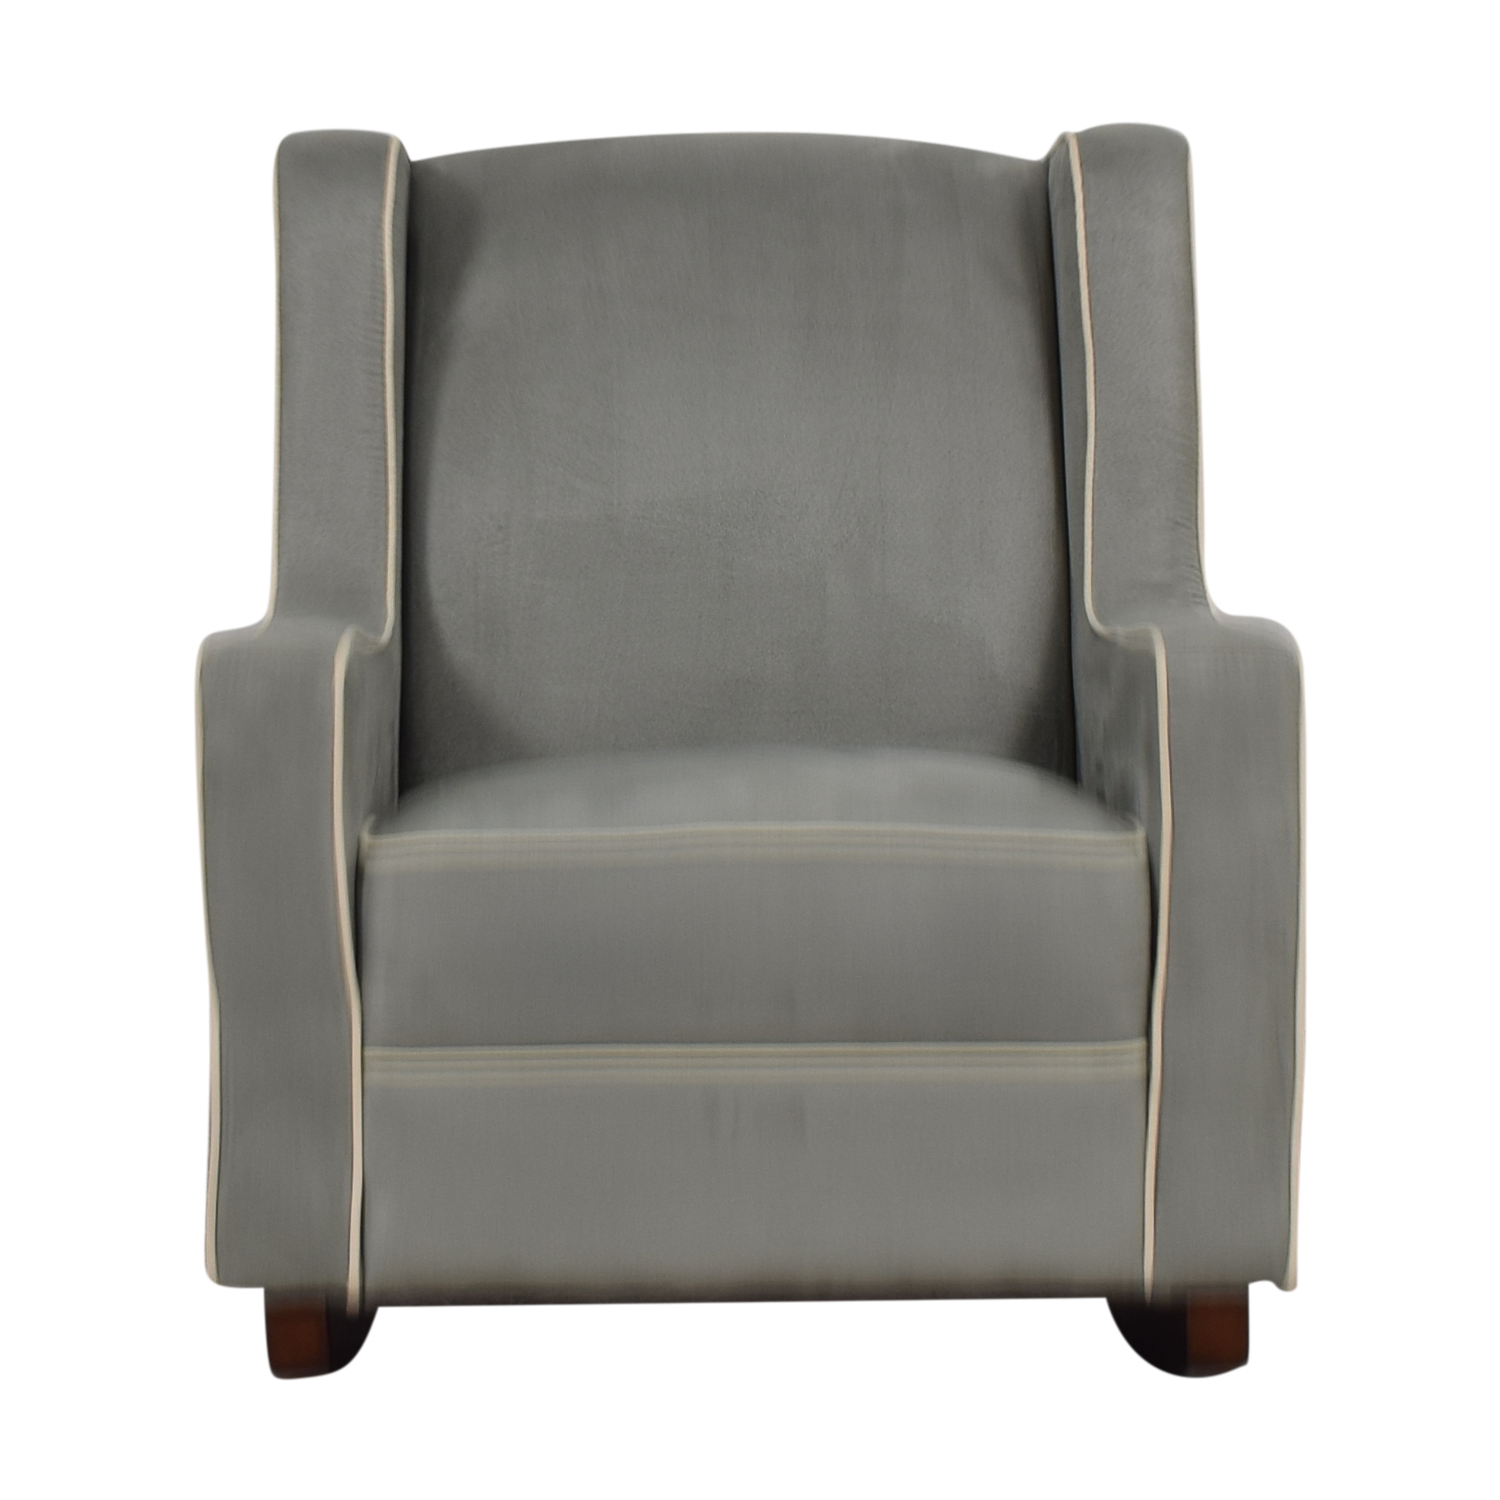 Plush Chairs 55 Off Viv Rae Viv Rae Sanders Grey With Beige Piping